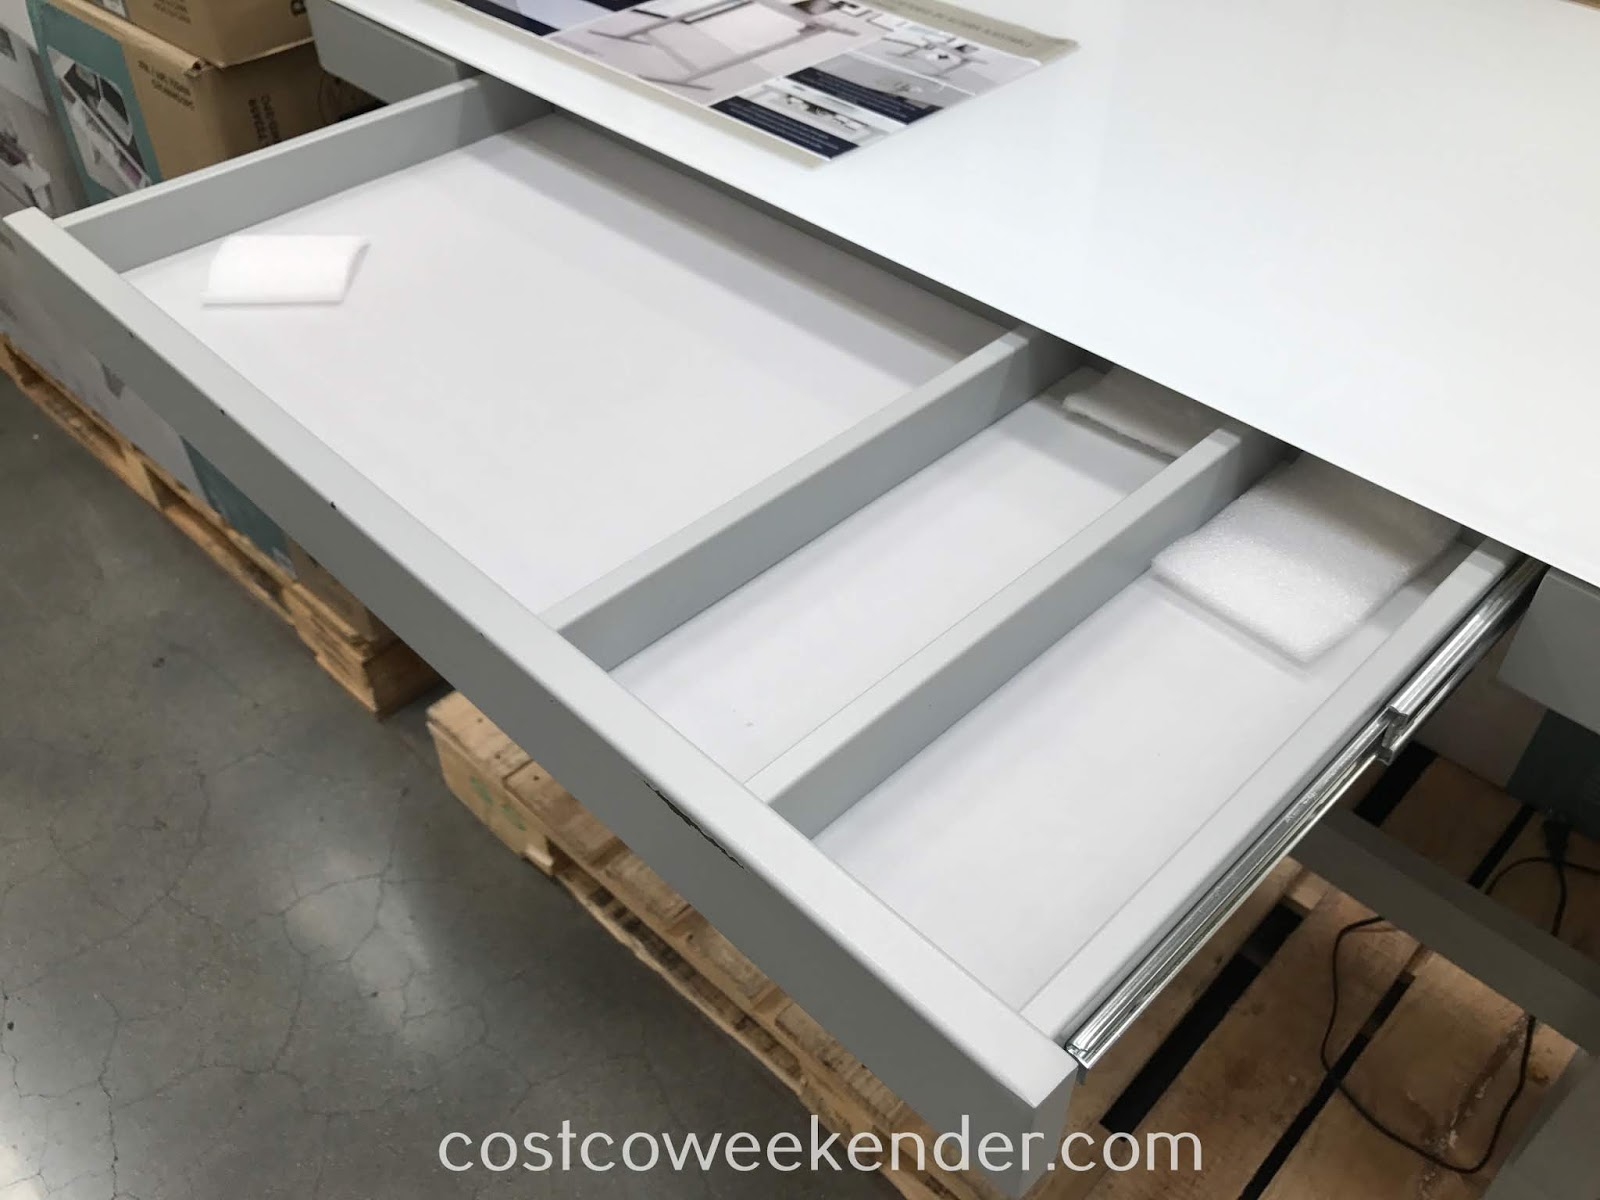 Tresanti Adjustable Height Desk Costco Weekender